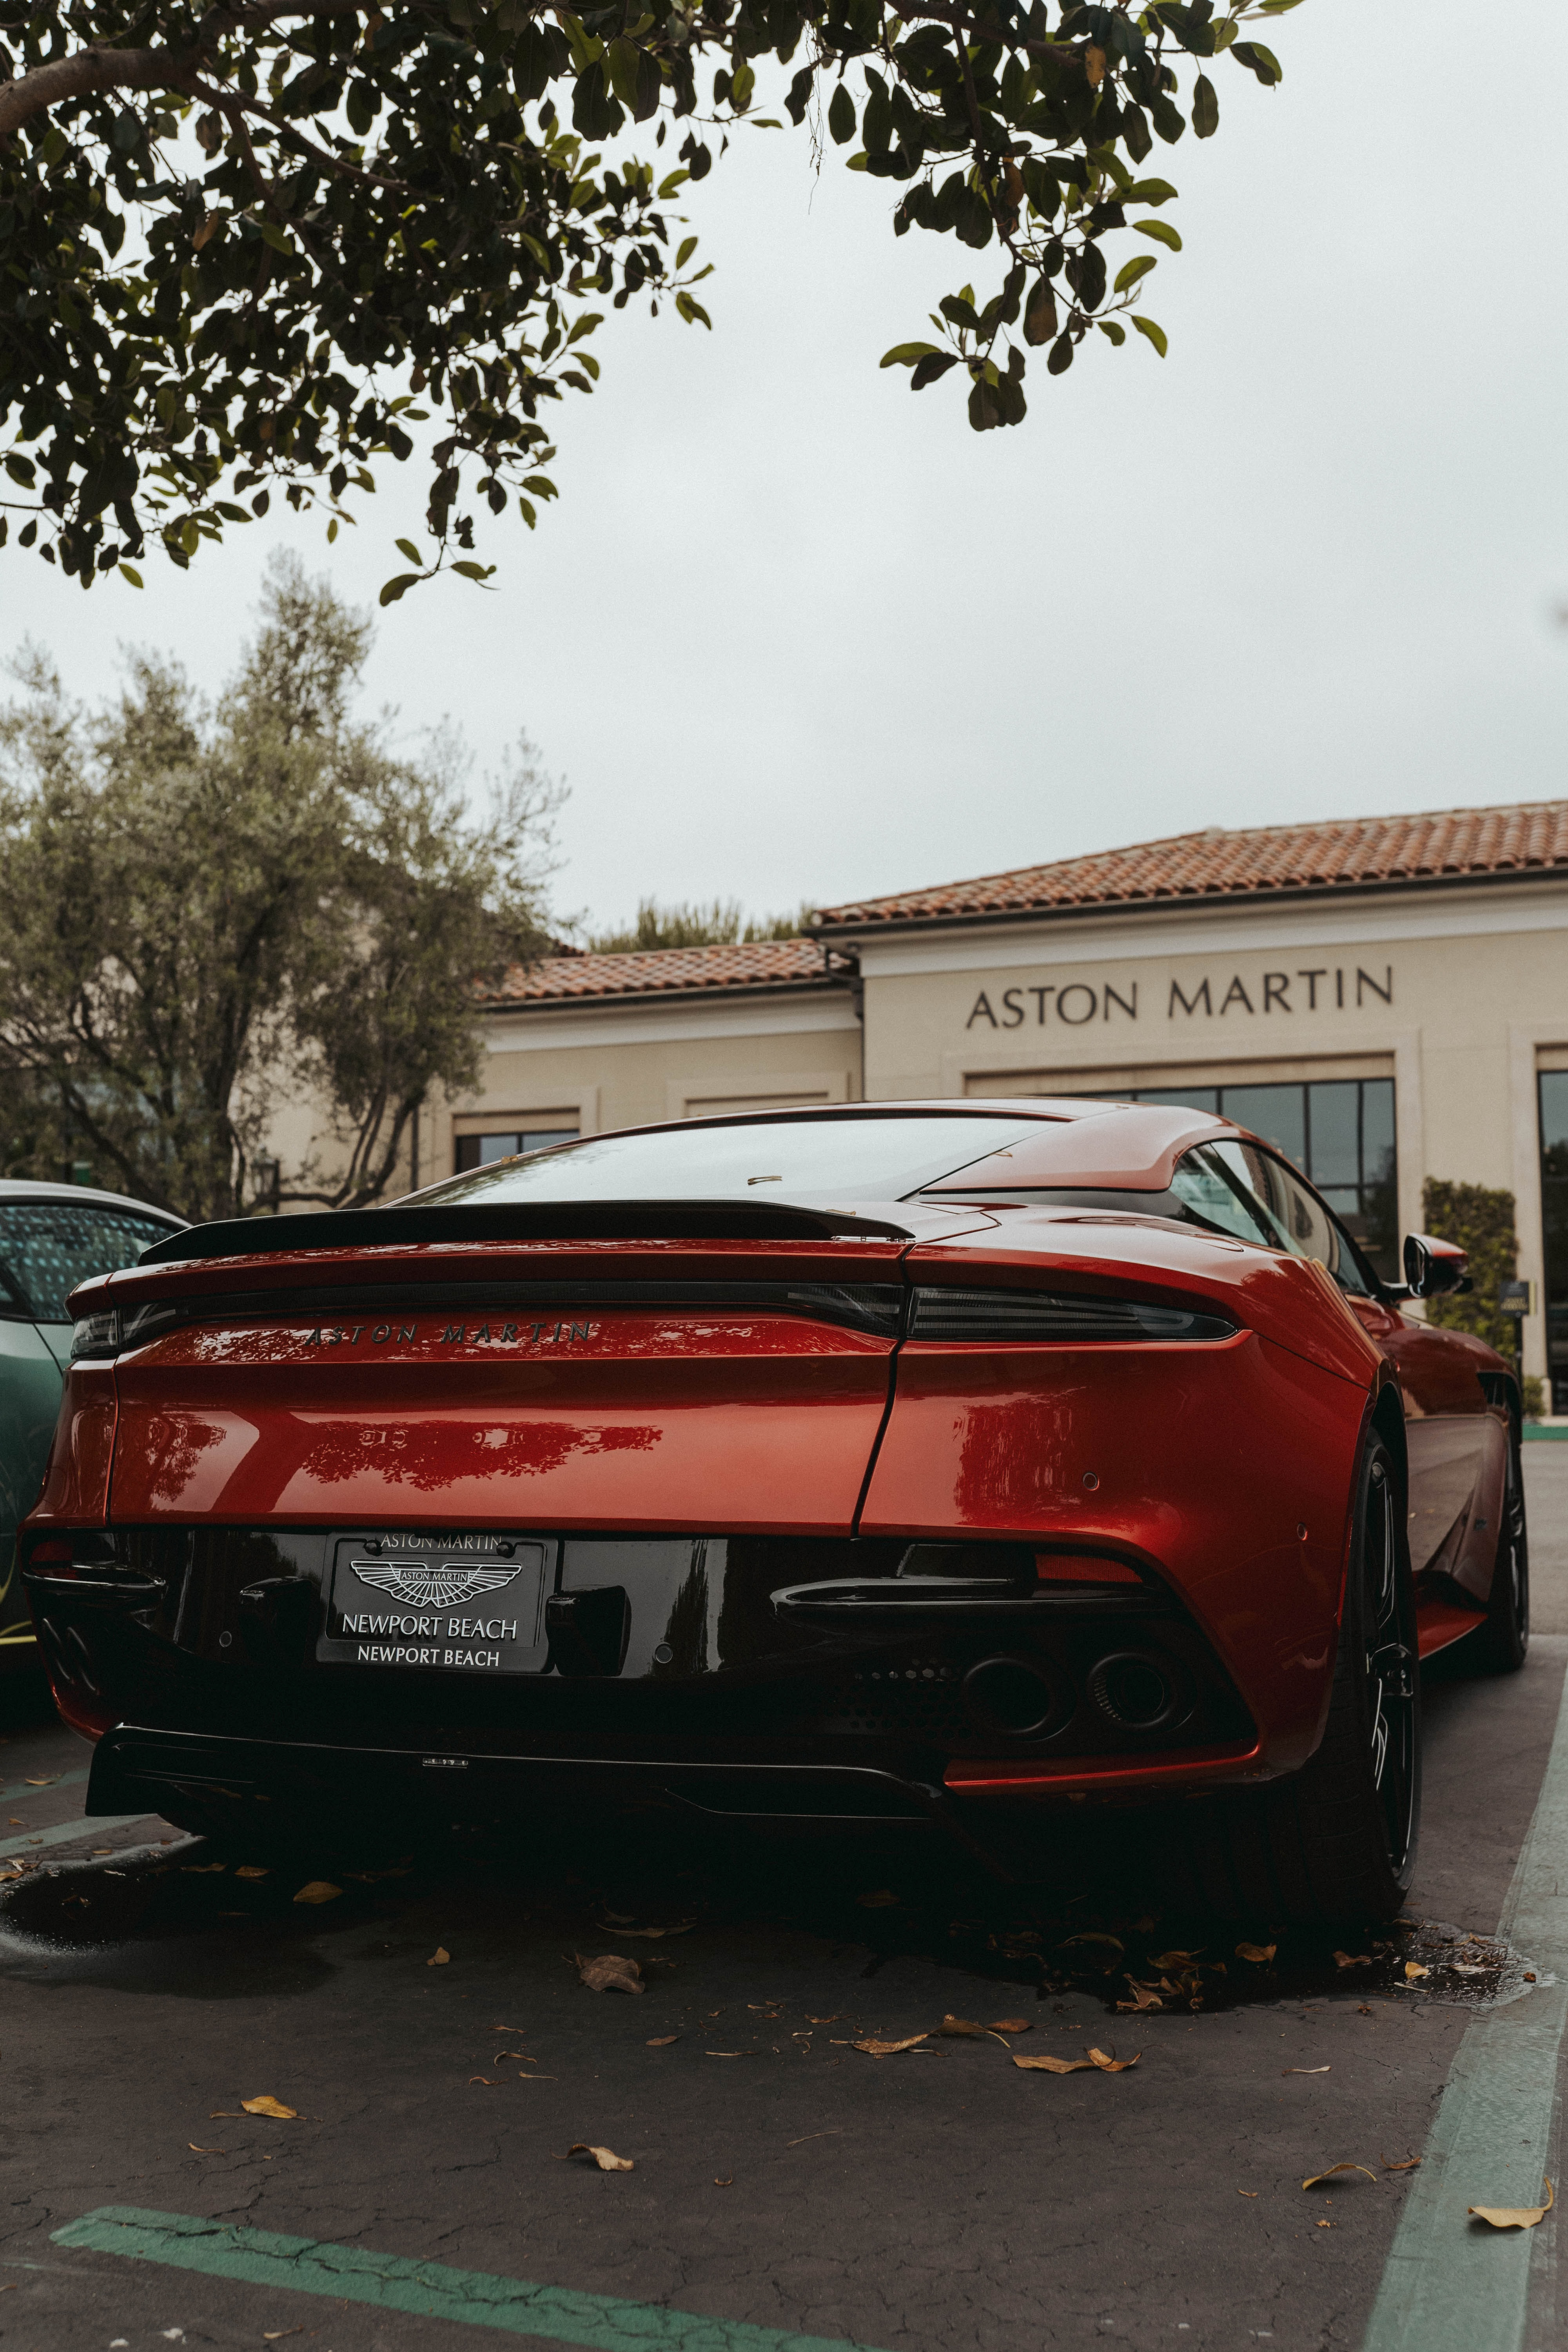 Aston Martin Pictures Download Free Images On Unsplash